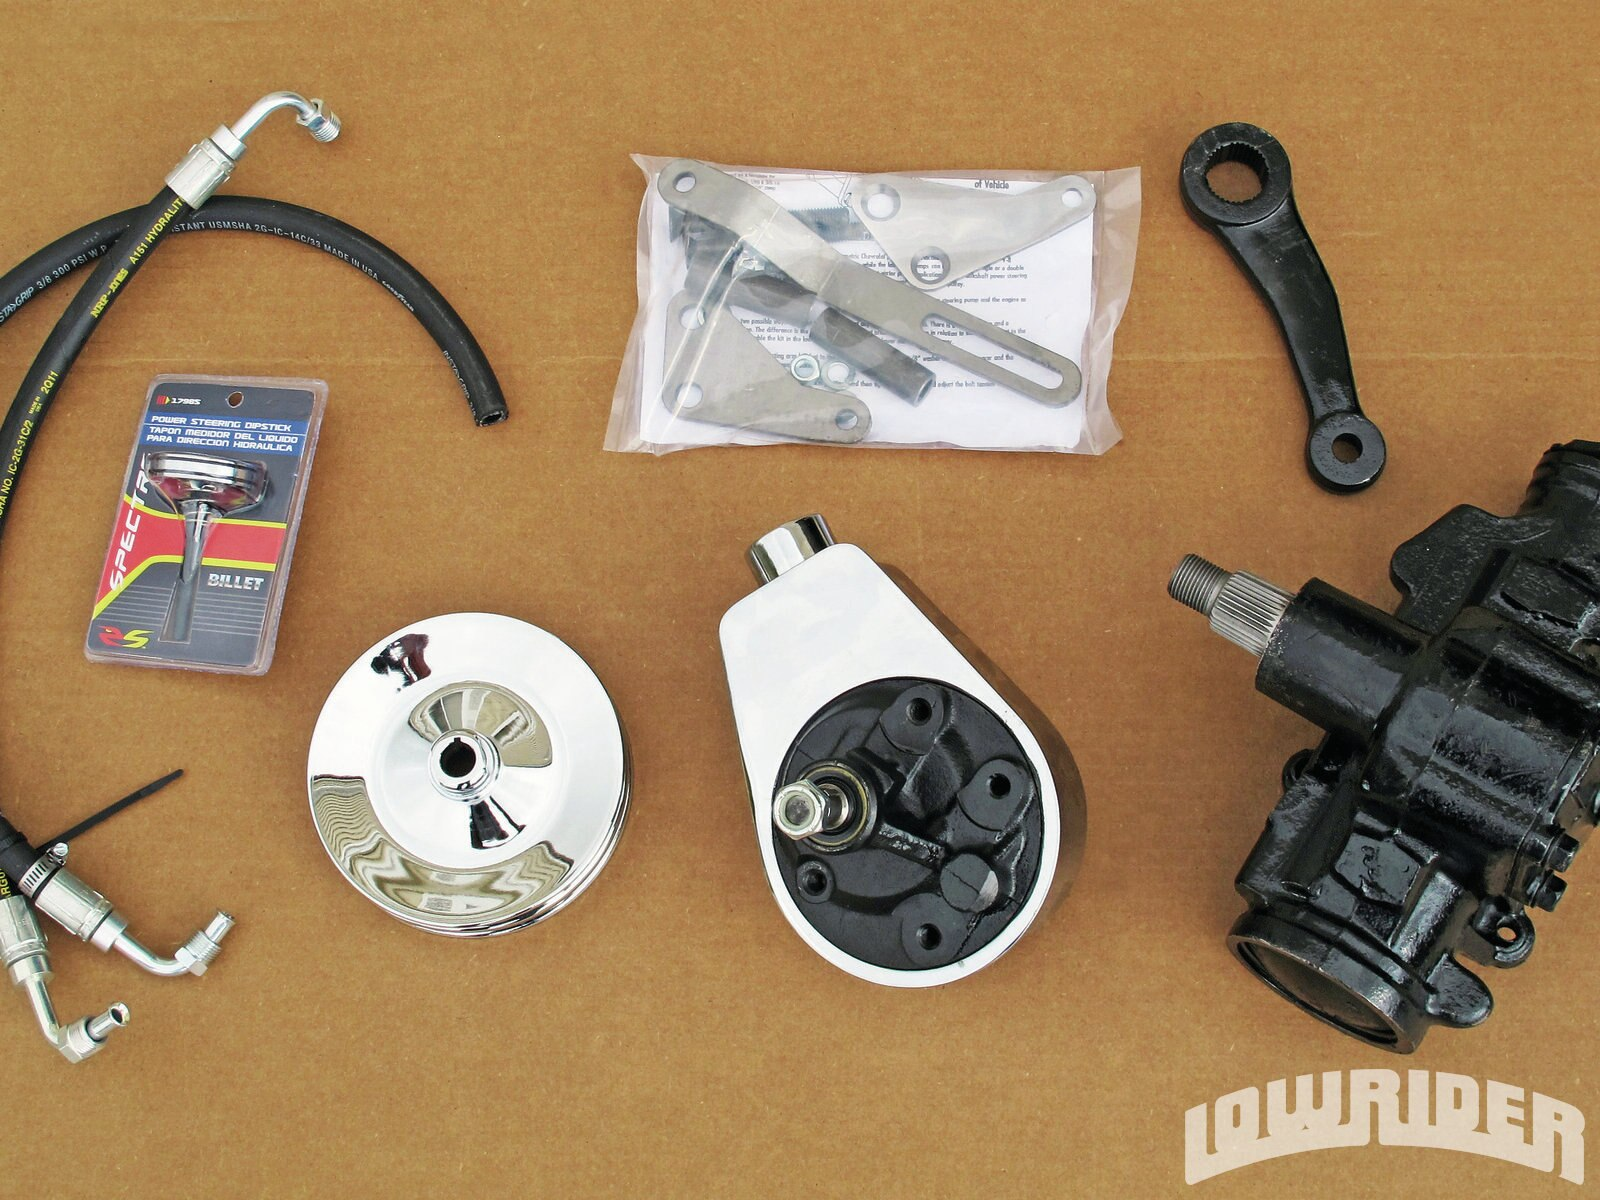 1206-lrmp-01-o-power-steering-upgrade-power-steering-kit1